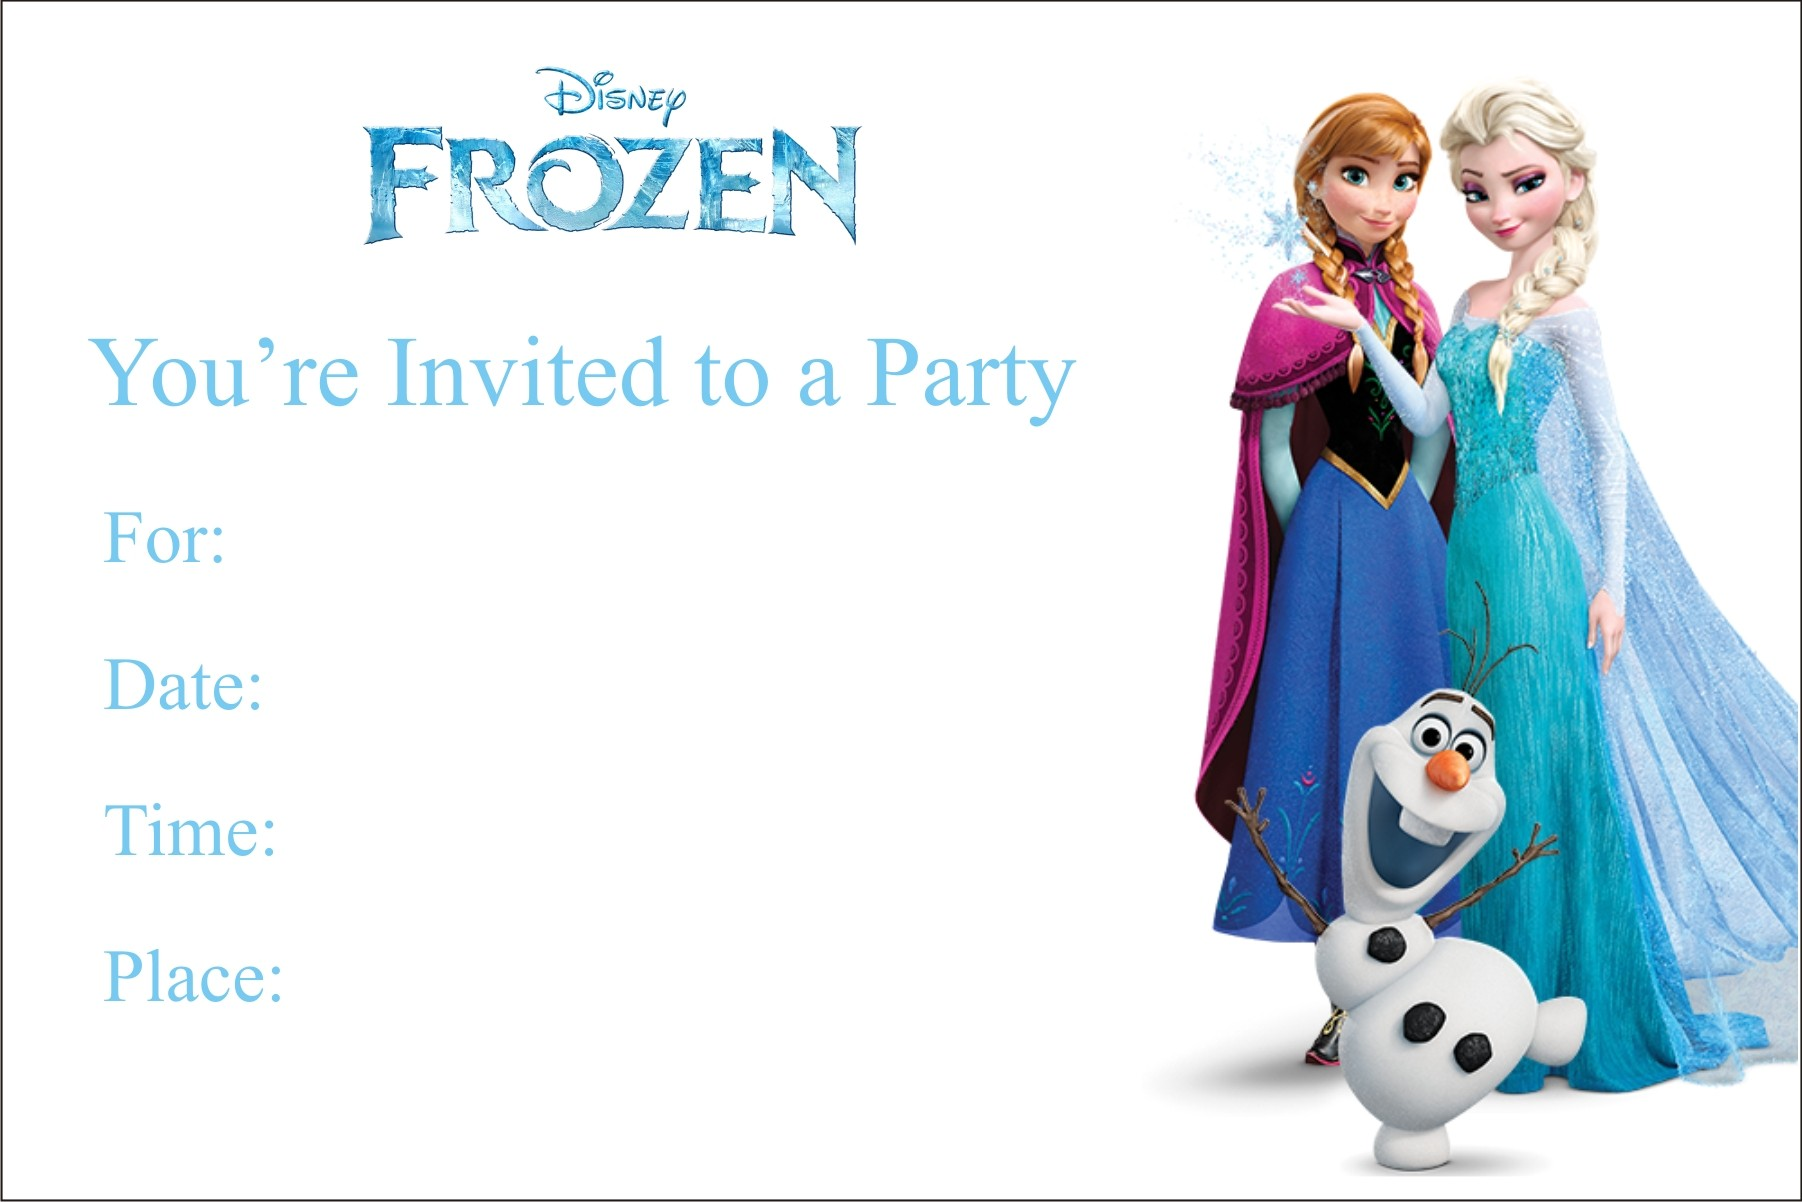 Frozen free printable birthday party invitation personalized party frozen free printable birthday party invitation filmwisefo